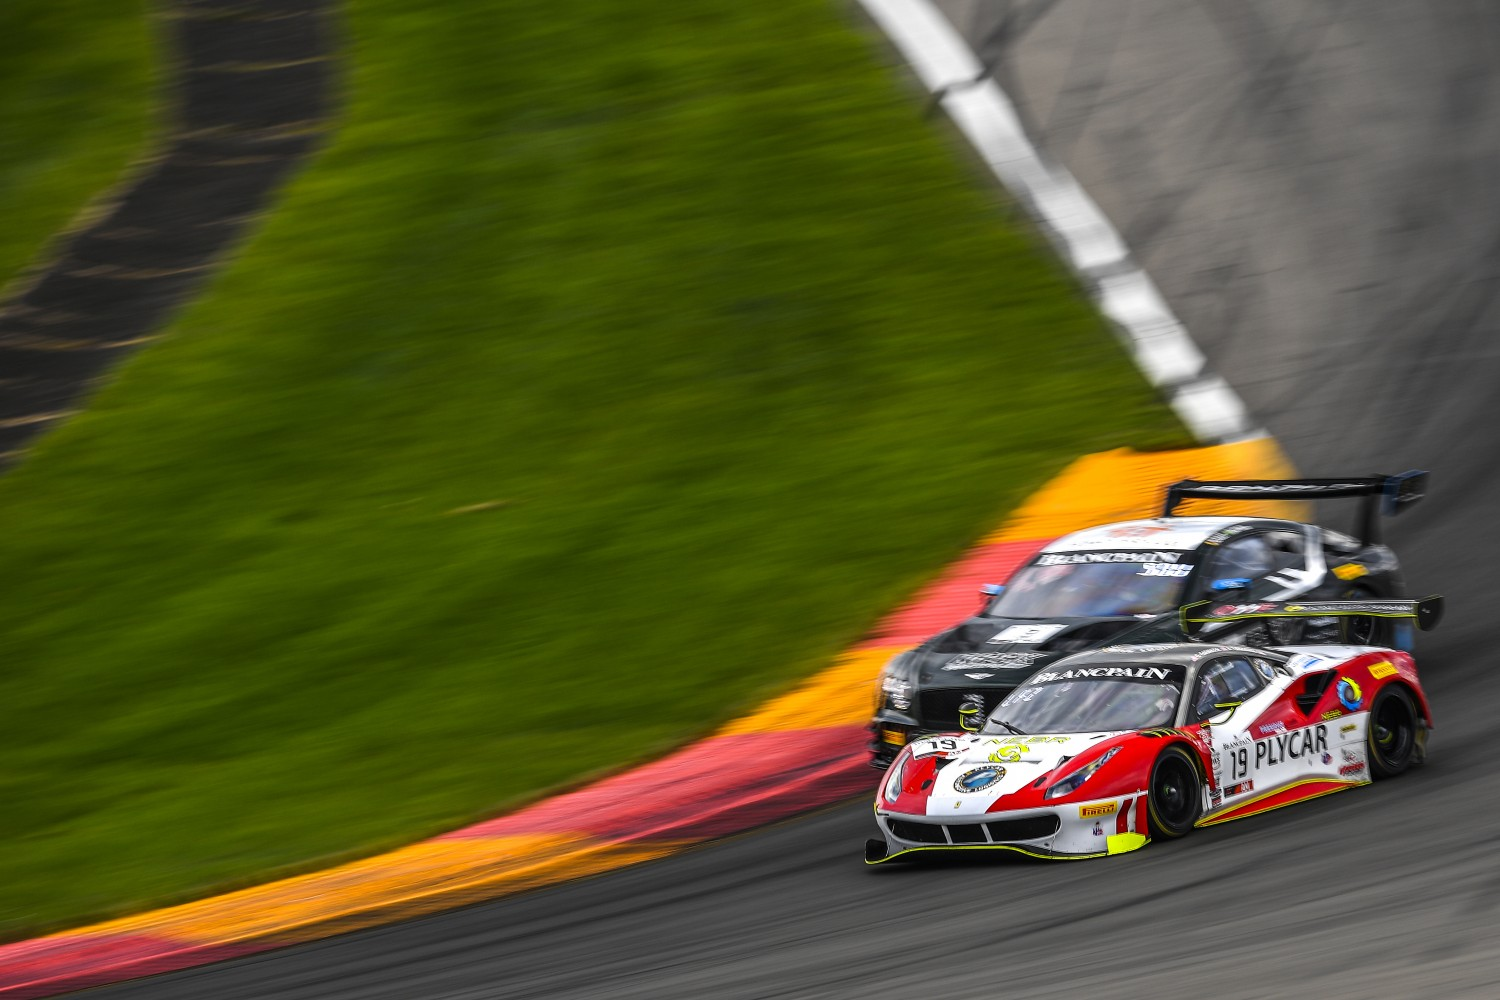 #19 Ferrari 488 GT3 of Christopher Cagnazzi and Anthony Lazzaro with One11 Competition  Watkins Glen World Challenge America , Watkins Glen NY   | Gavin Baker/SRO